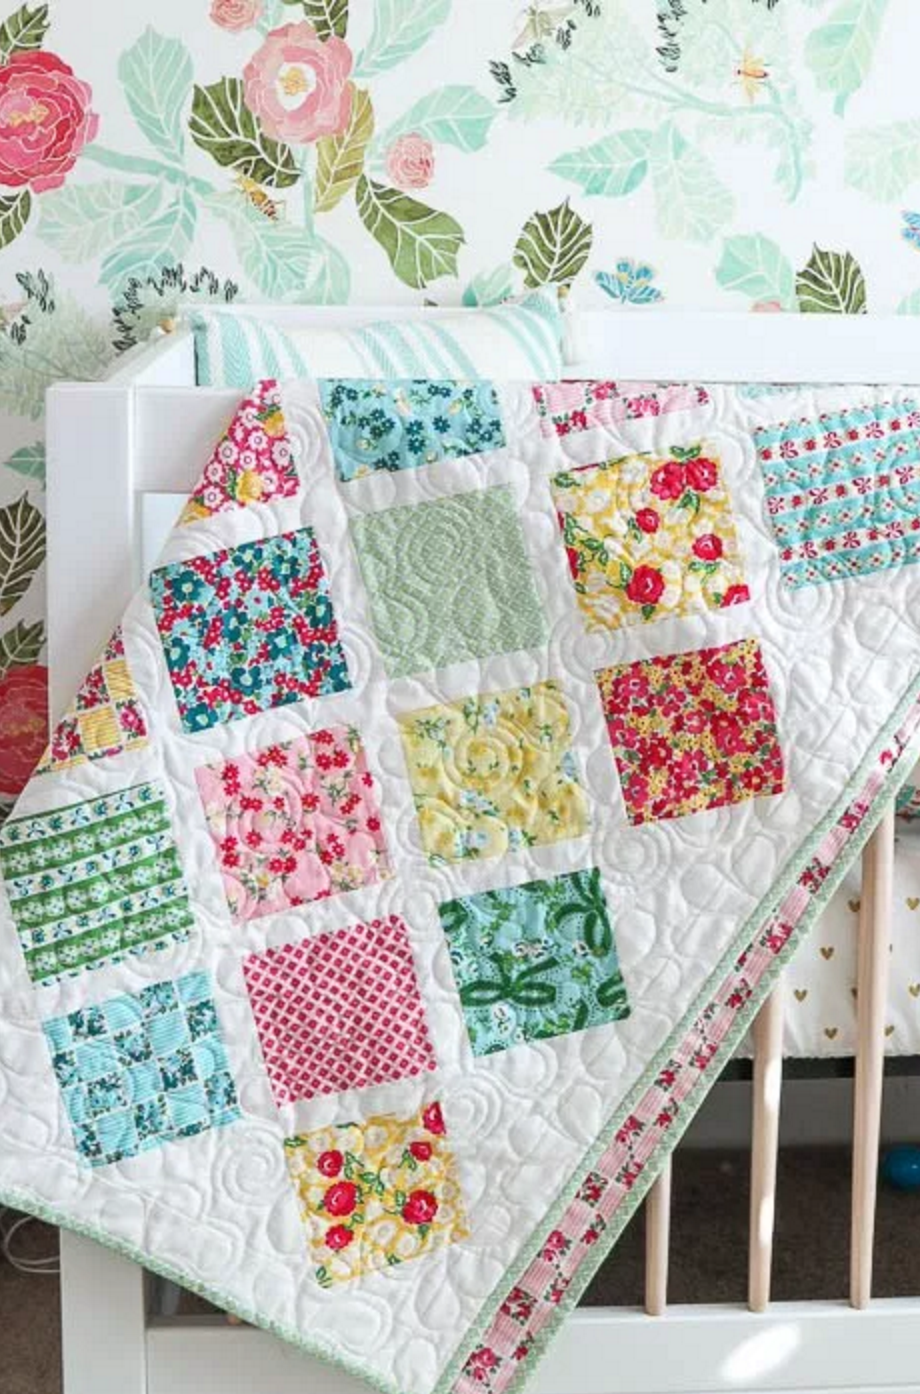 Dainty darling fabric tour day 4 with amy smart from diary of a dainty darling fabric tour day 4 with amy smart from diary of a quilter sharing baditri Choice Image